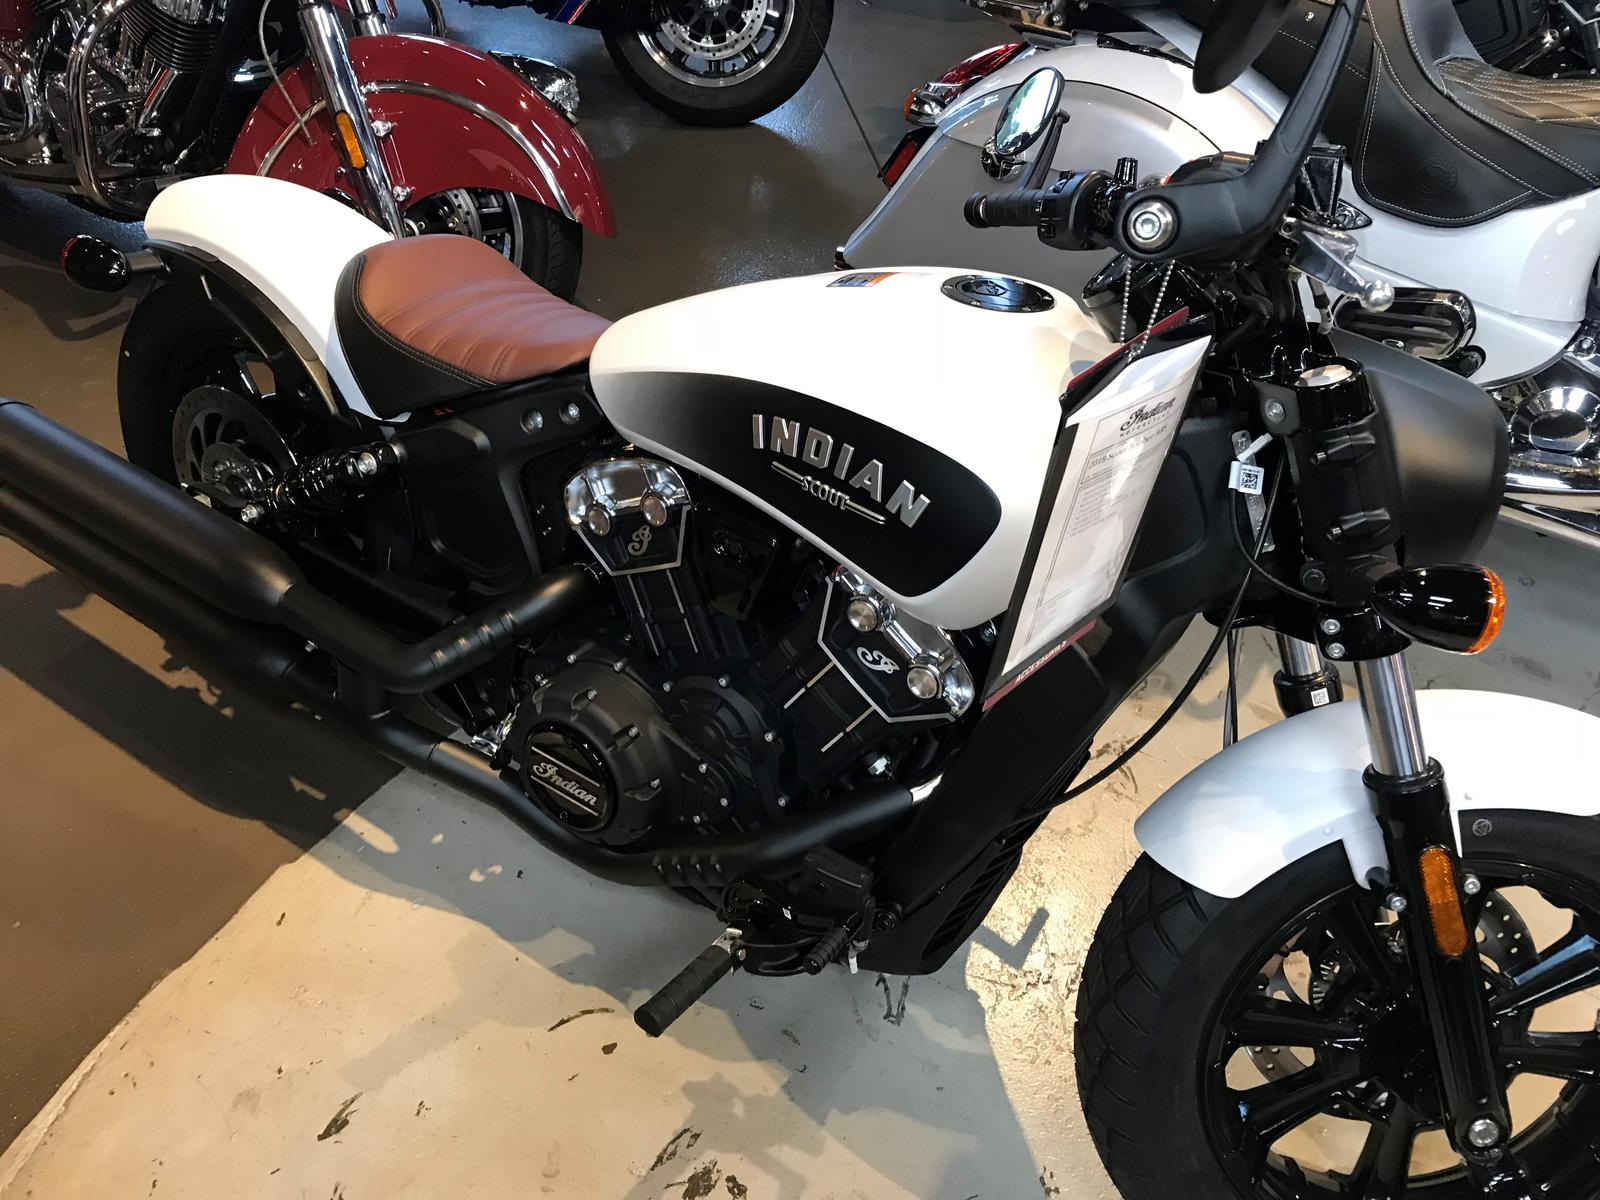 Inventory From Honda And Indian Motorcycle Wagner Motorsports White Rebel Bobber 2019